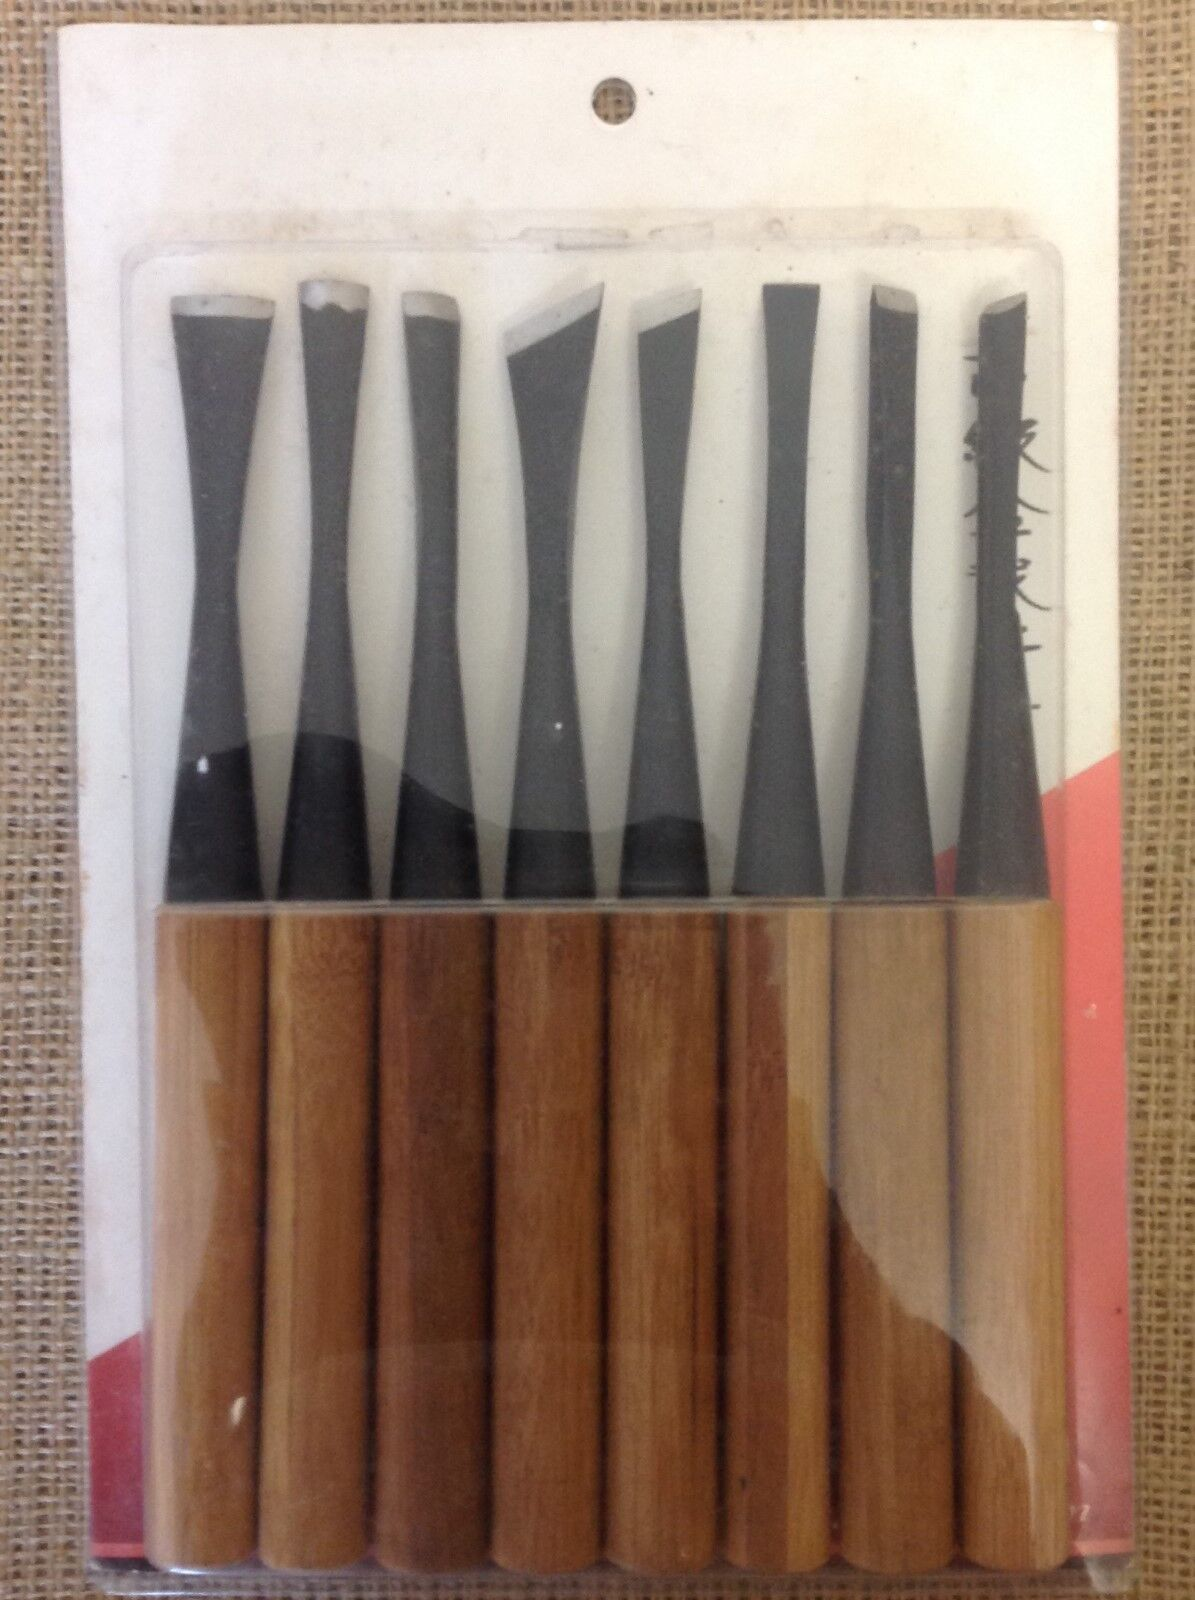 Ryuga Bonsai Tools Set Of 8 Bonsai Carving Tools 160mm